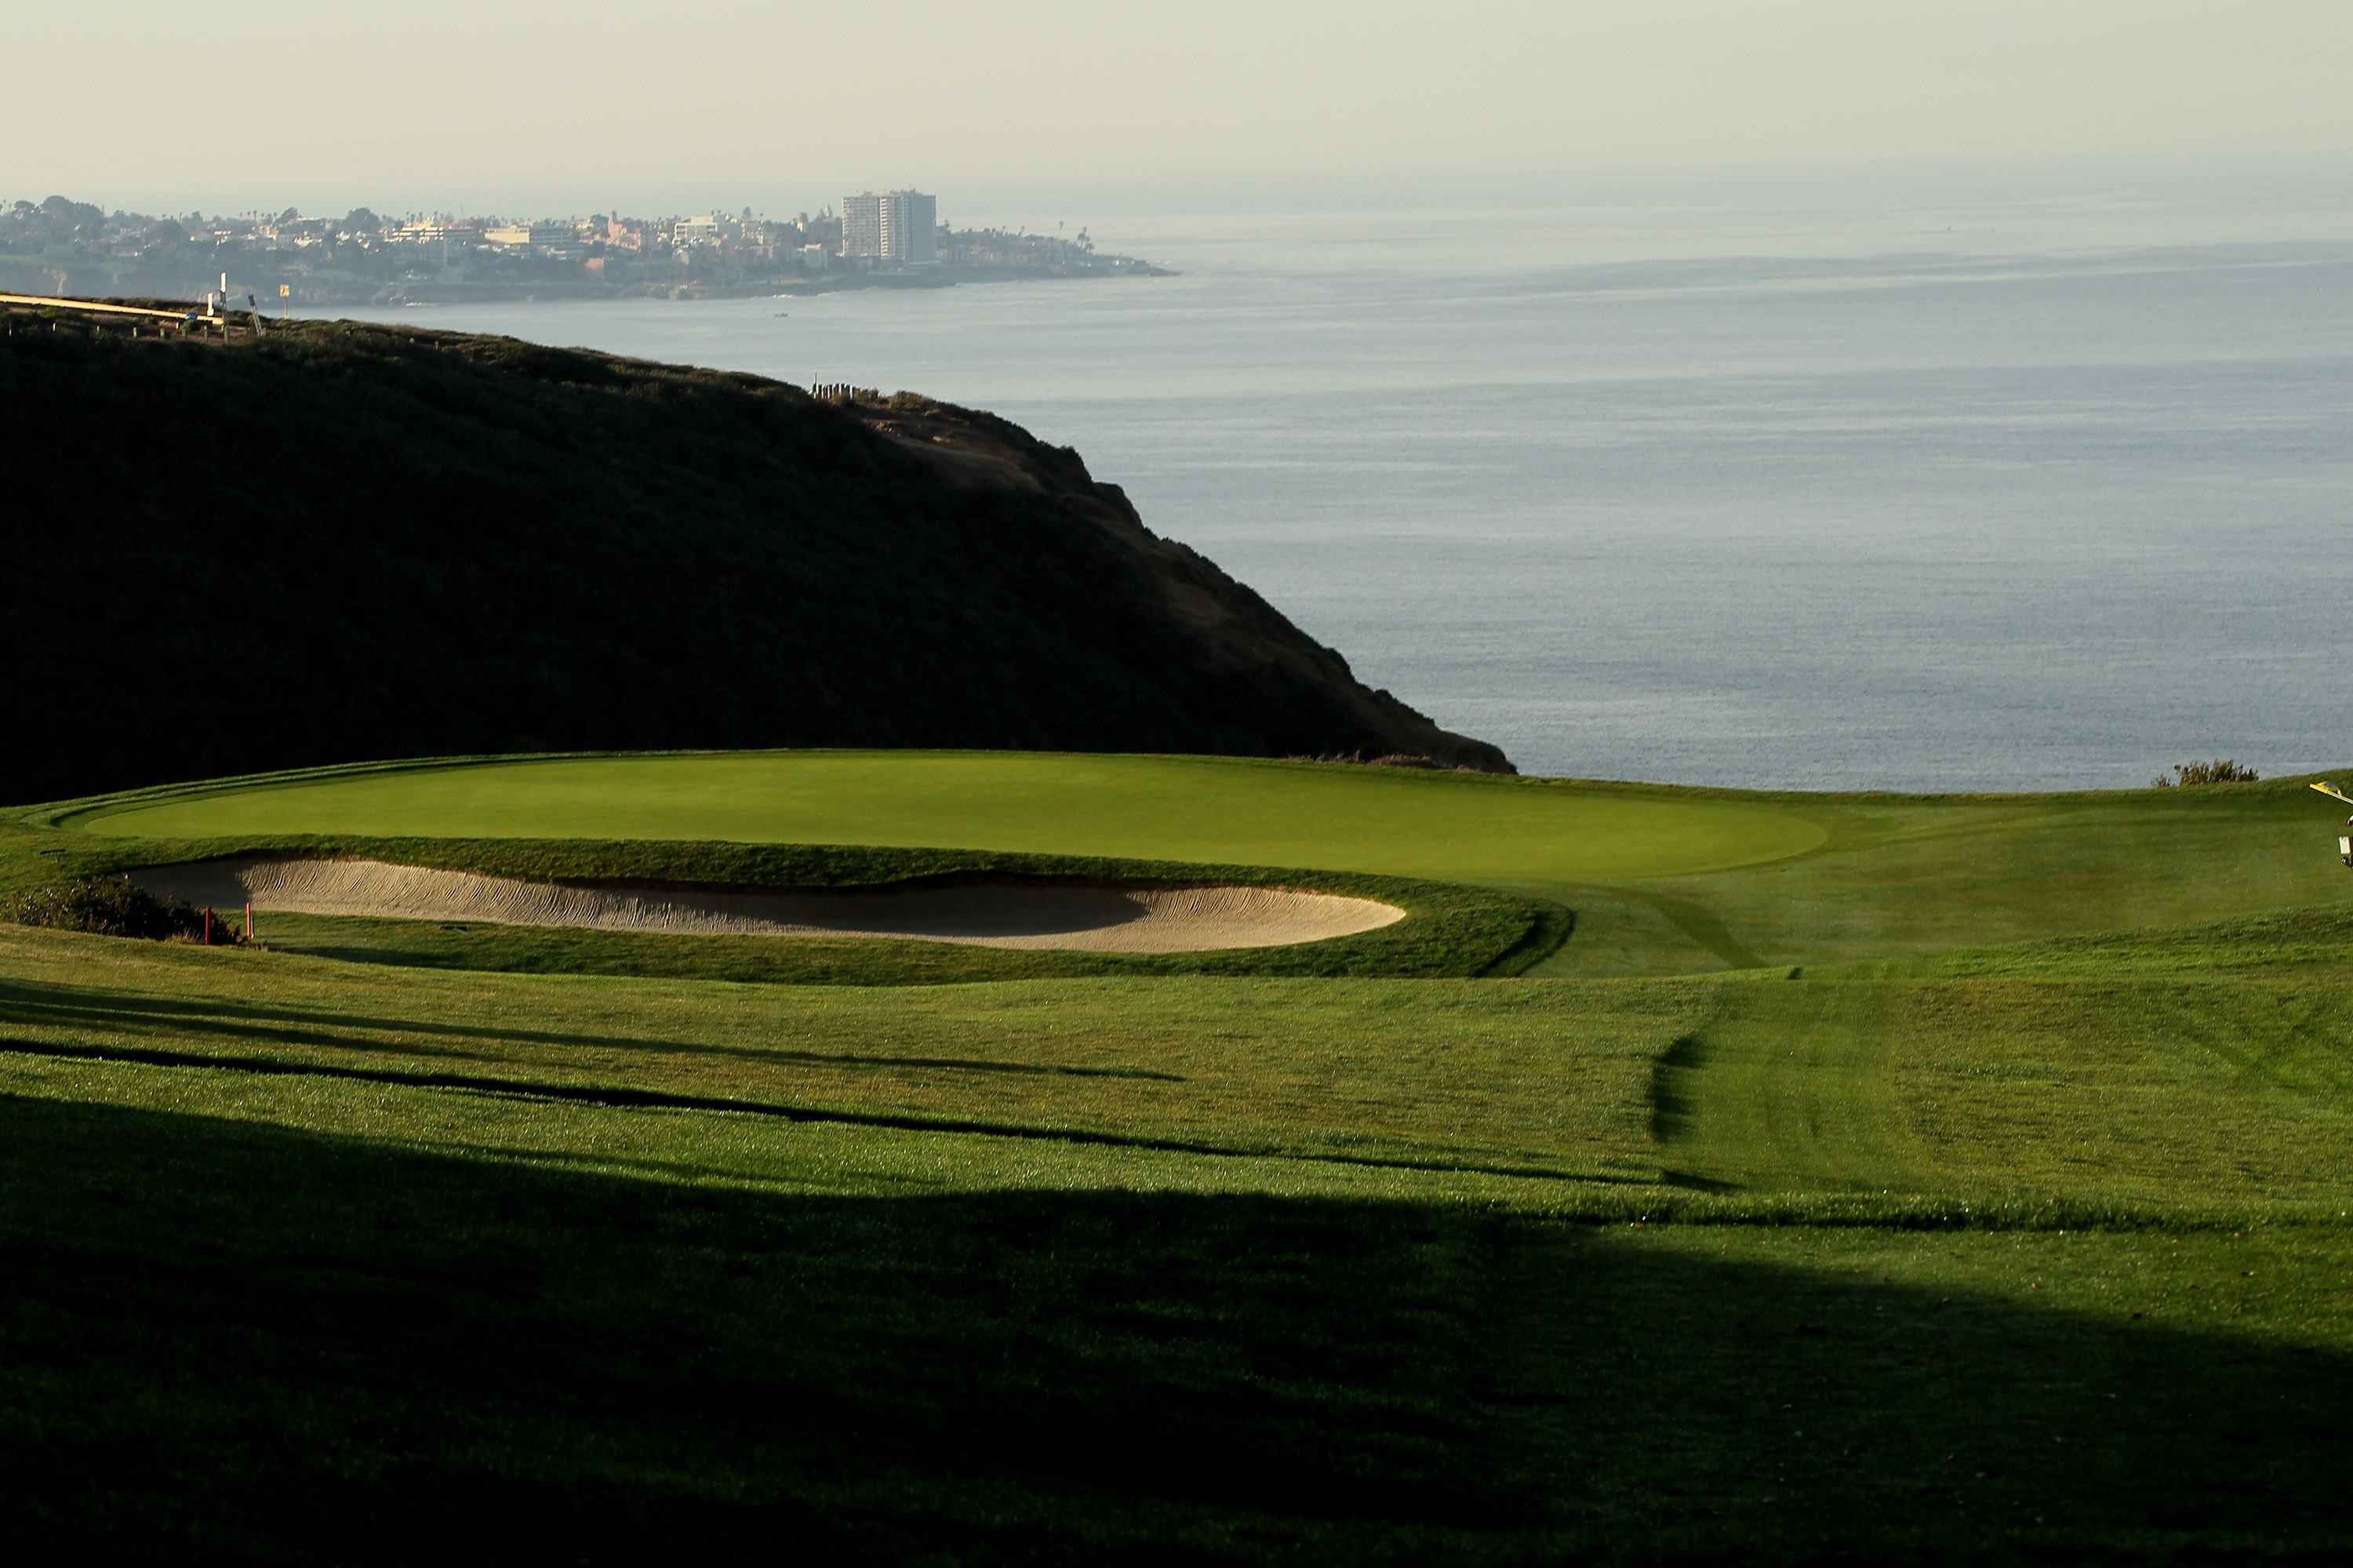 LA JOLLA, CA - JANUARY 30:  The third hole on the South Course at Torrey Pines Golf Course during the third round of the Farmers Insurance Open on January 30, 2010 in La Jolla, California. (Photo by Stephen Dunn/Getty Images)